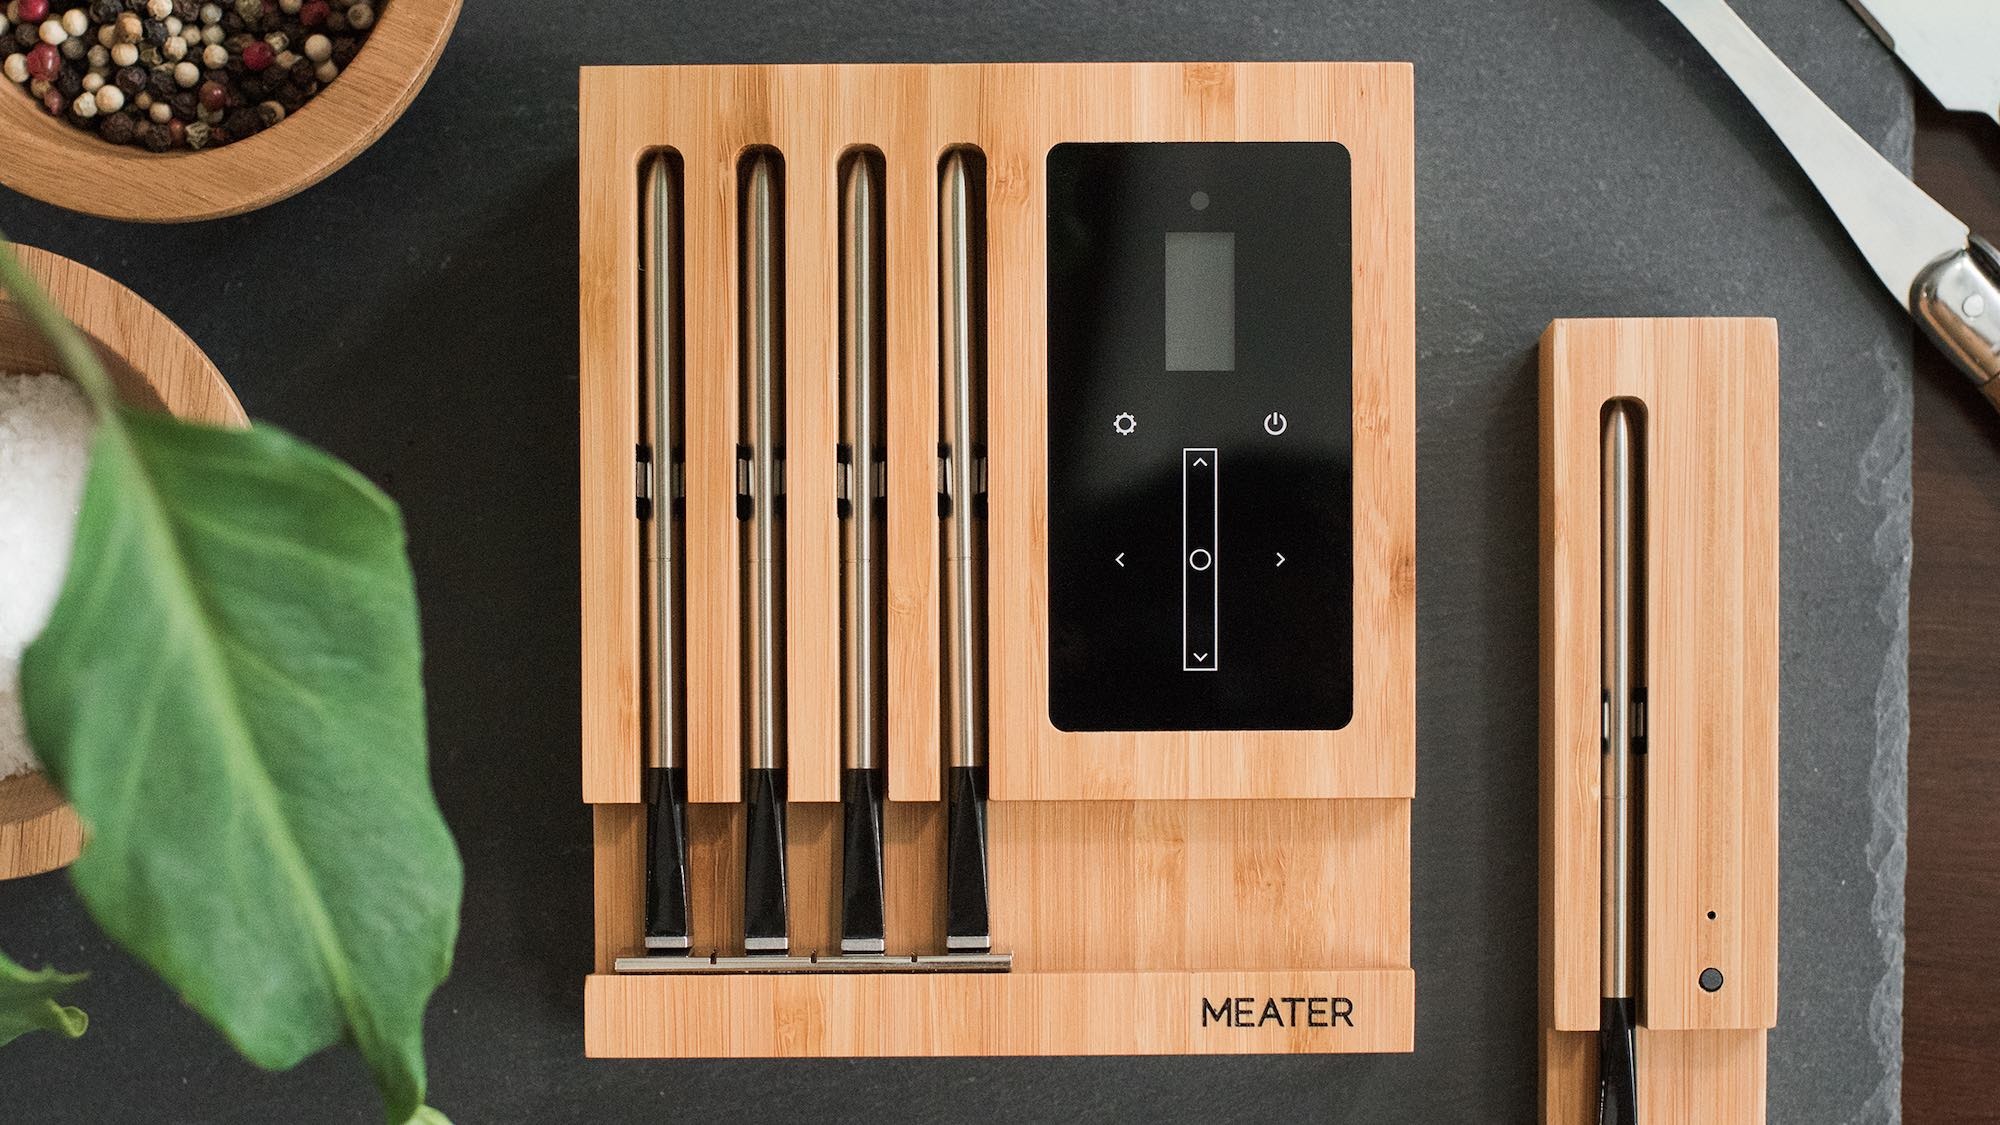 MEATER Block smart cooking probes allow you to accurately cook food to your liking